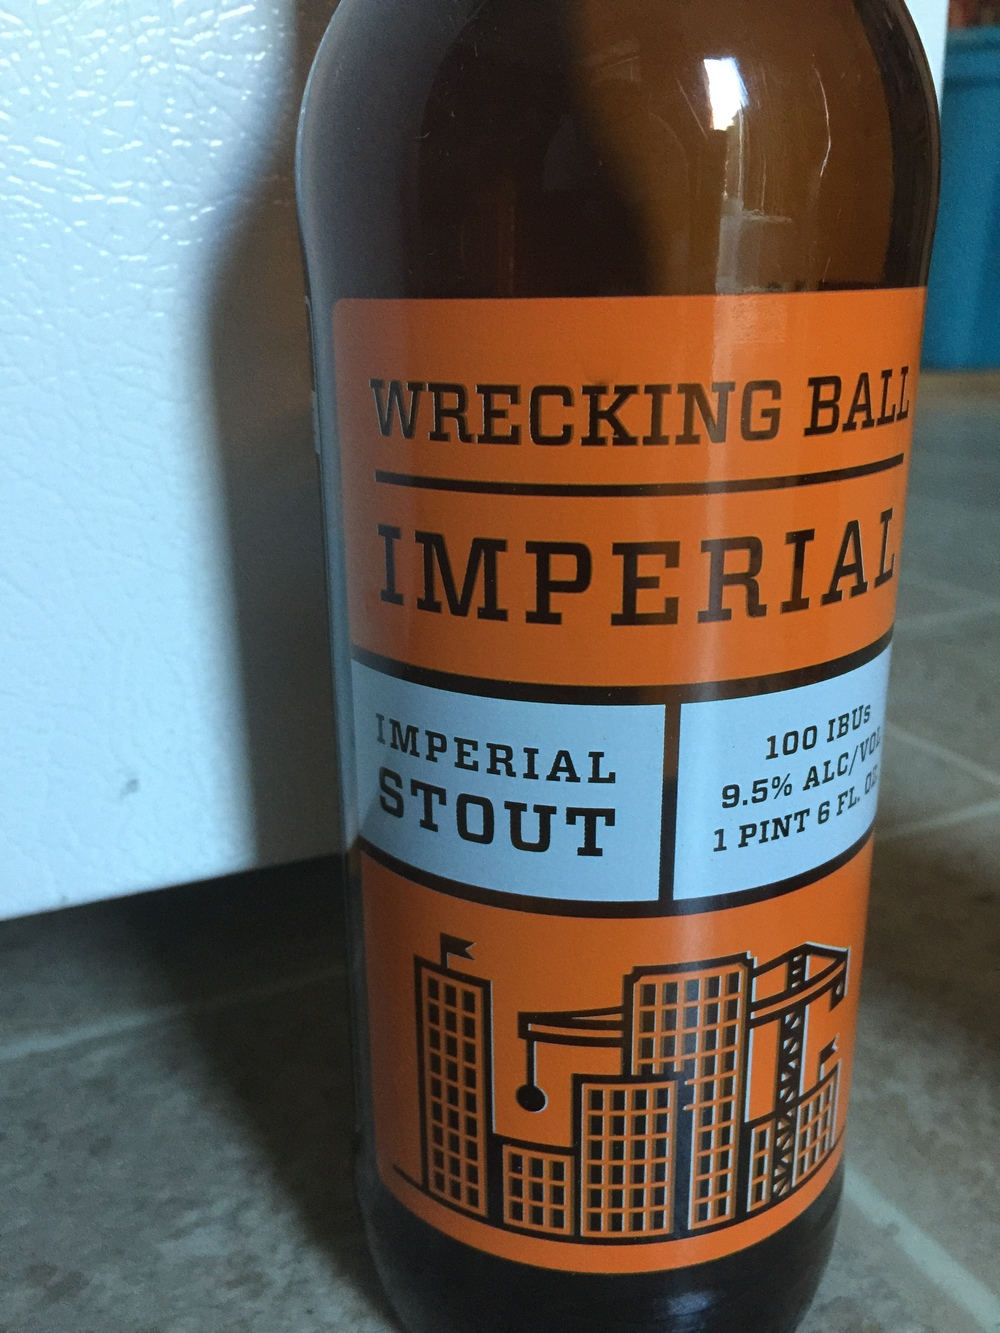 Wrecking Ball Brewing Imperial Stout   A nearly perfect stout. Don't be fooled by the 100IBU, this is not a bitter stout. It is a balanced, well defined stout beer with hints of chocolate that seem to blend into your tongue. A slow drinking, easy going beer.  Ratings:  Josh 9.5/10  Justyn: 9/10  Jaren: 8/10  Average: 8.83/10